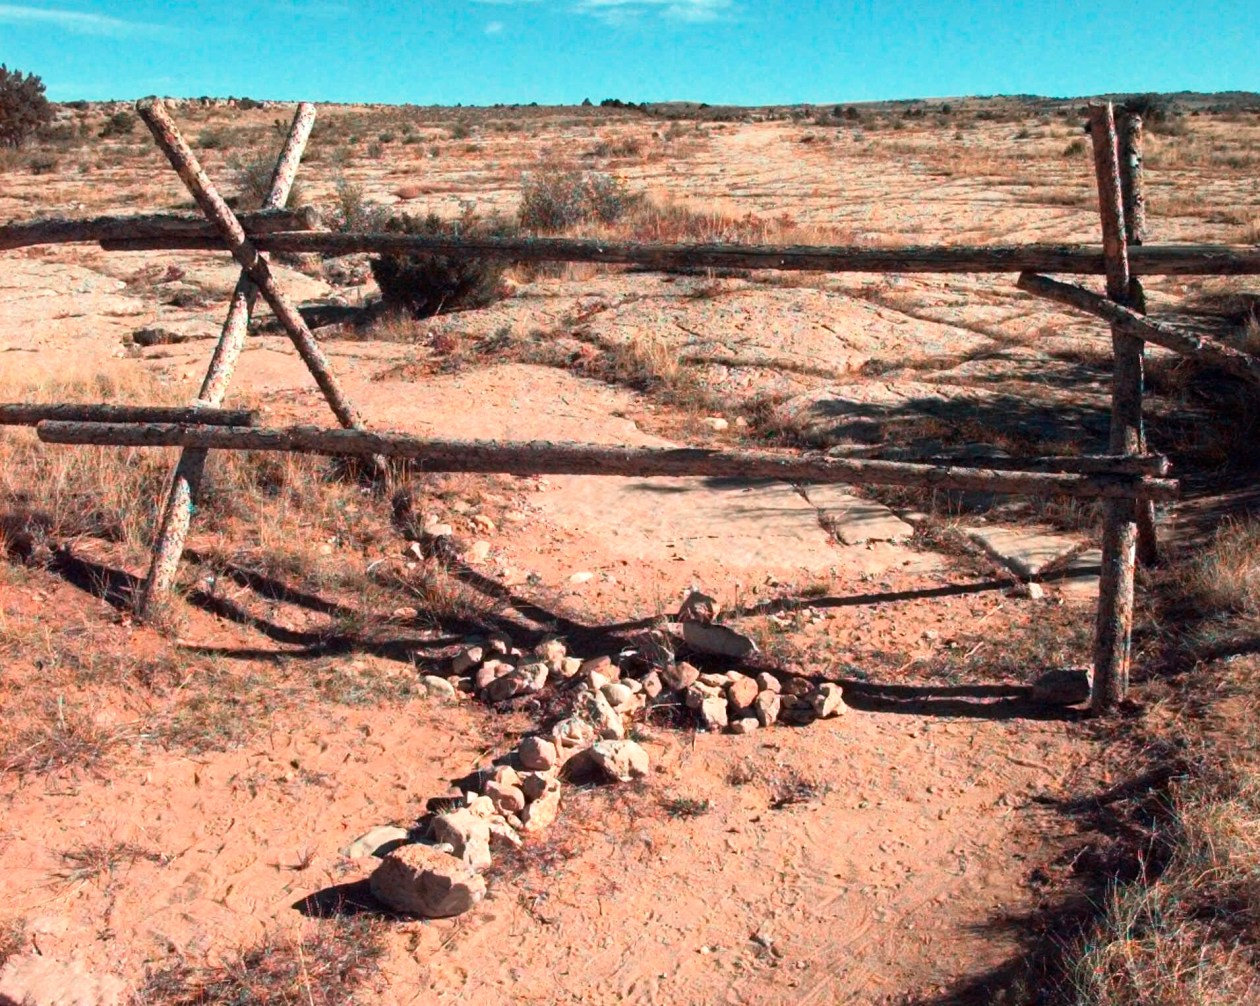 FILE - A cross made of stones rests below the fence in Laramie, Wyo., where a year earlier, University of Wyoming student Matthew Shepard was tied and pistol whipped into a coma, Oct. 9, 1999.